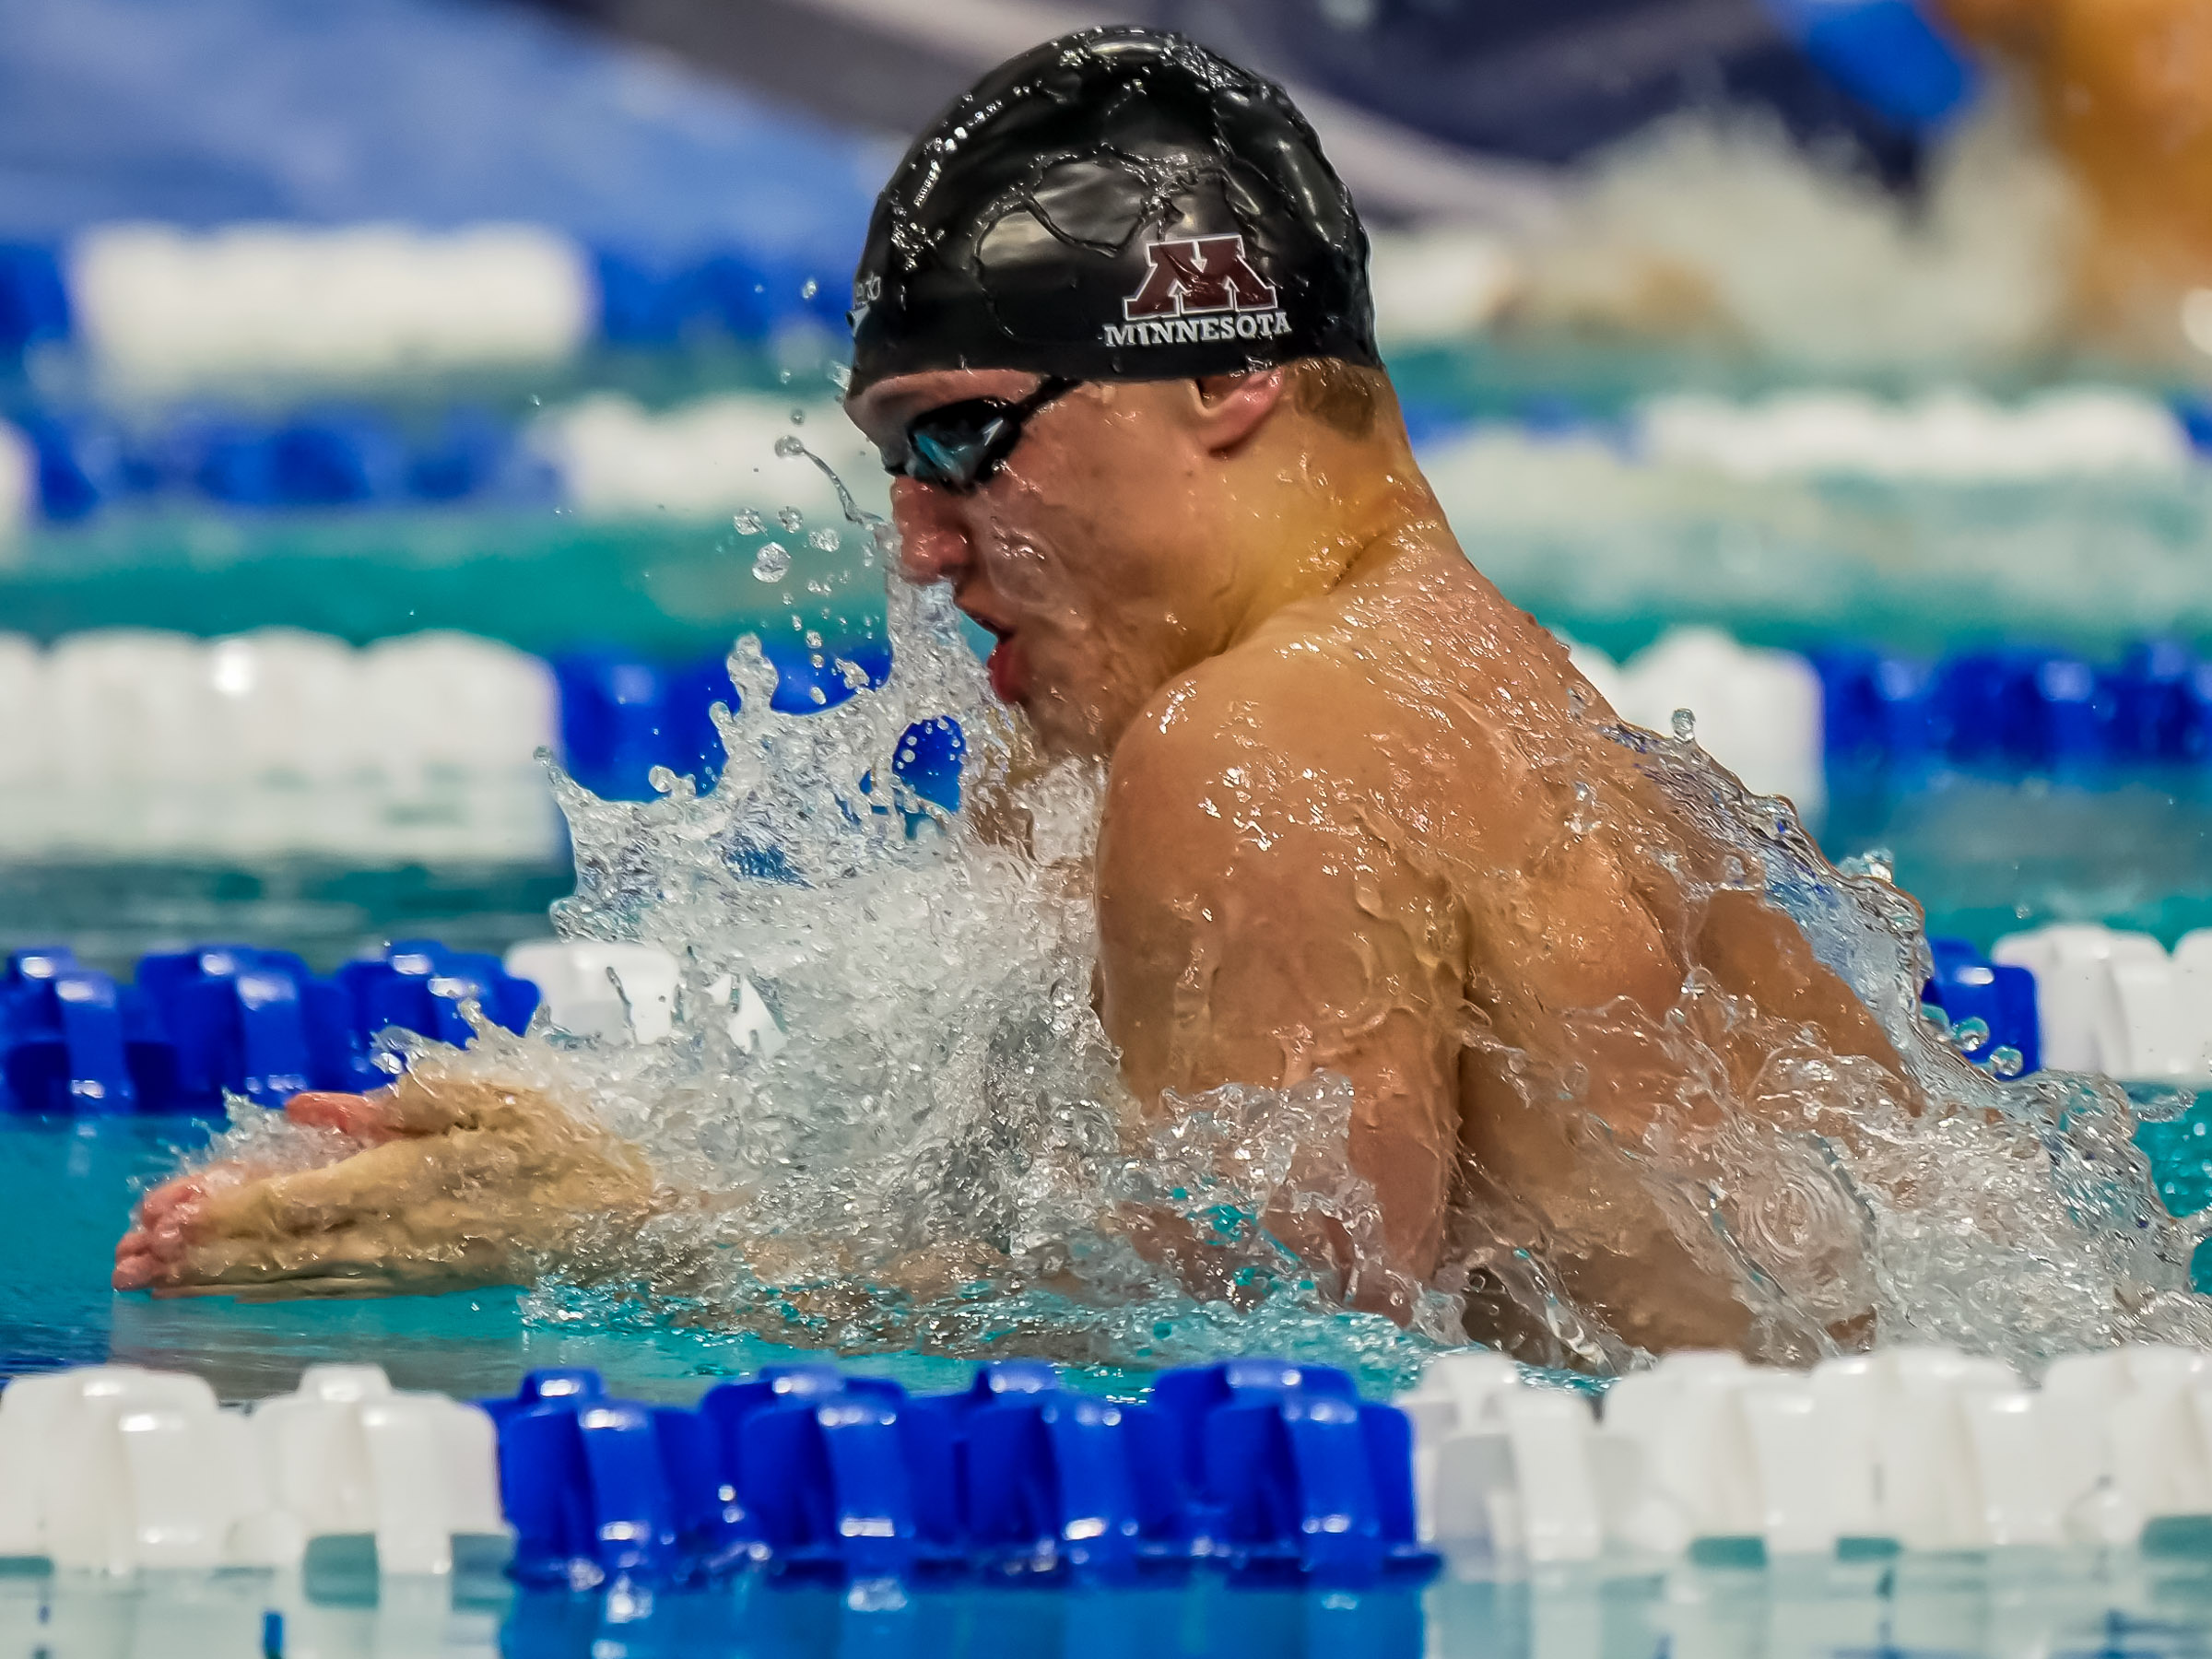 Minnesota Swimming and Diving Upsets Southern Cal; McHugh Blasts 52.9 100 Breast